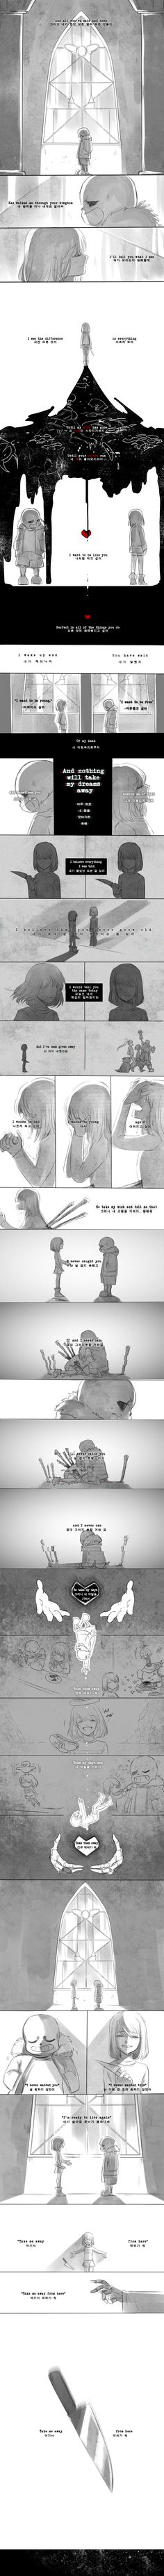 Sans, Chara, and Frisk - comic - Lullaby Suicide